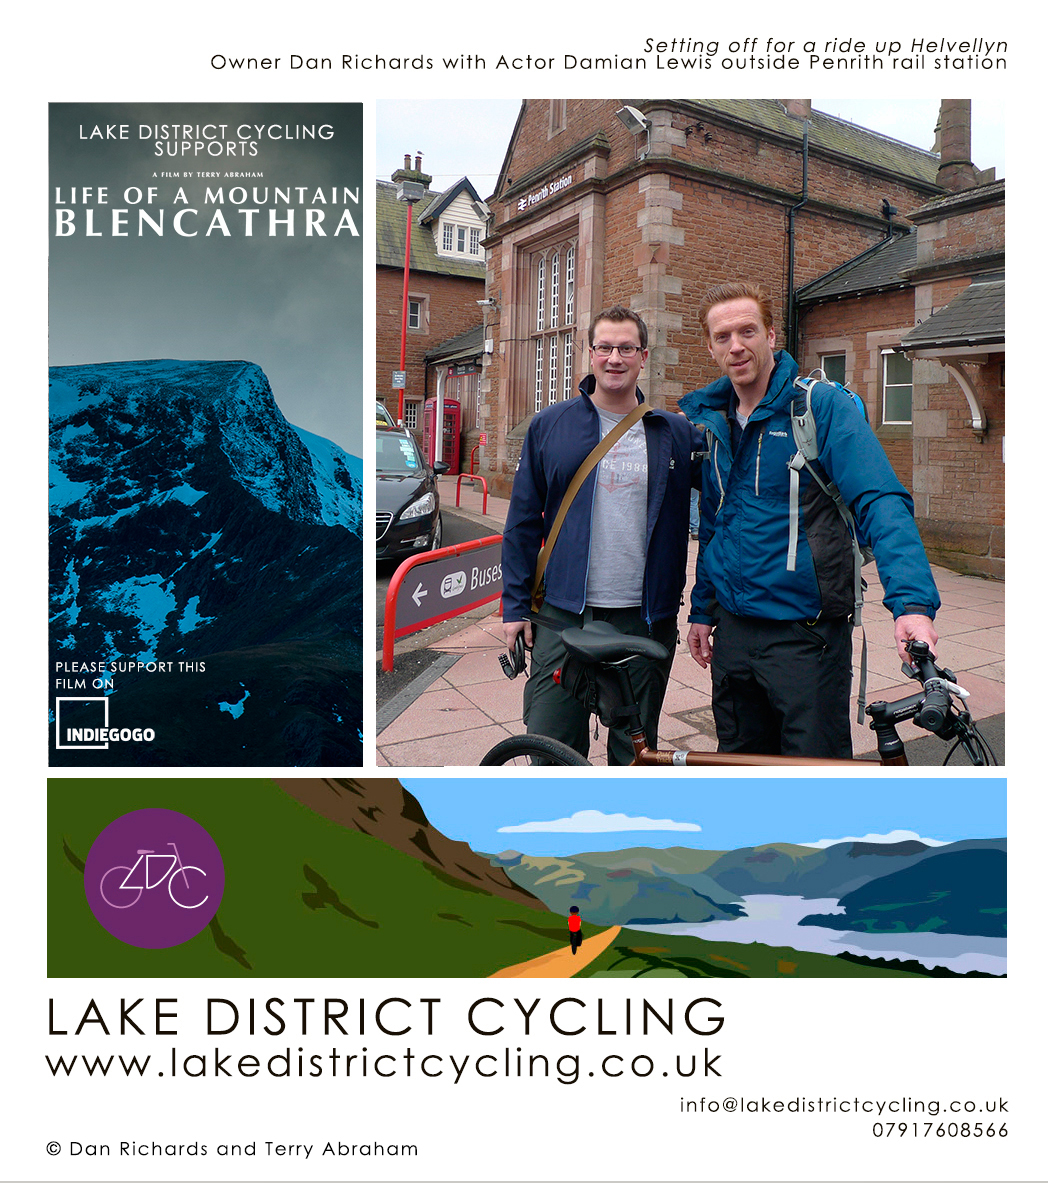 actor damian lewis lake district cycling cumbria helvellyn